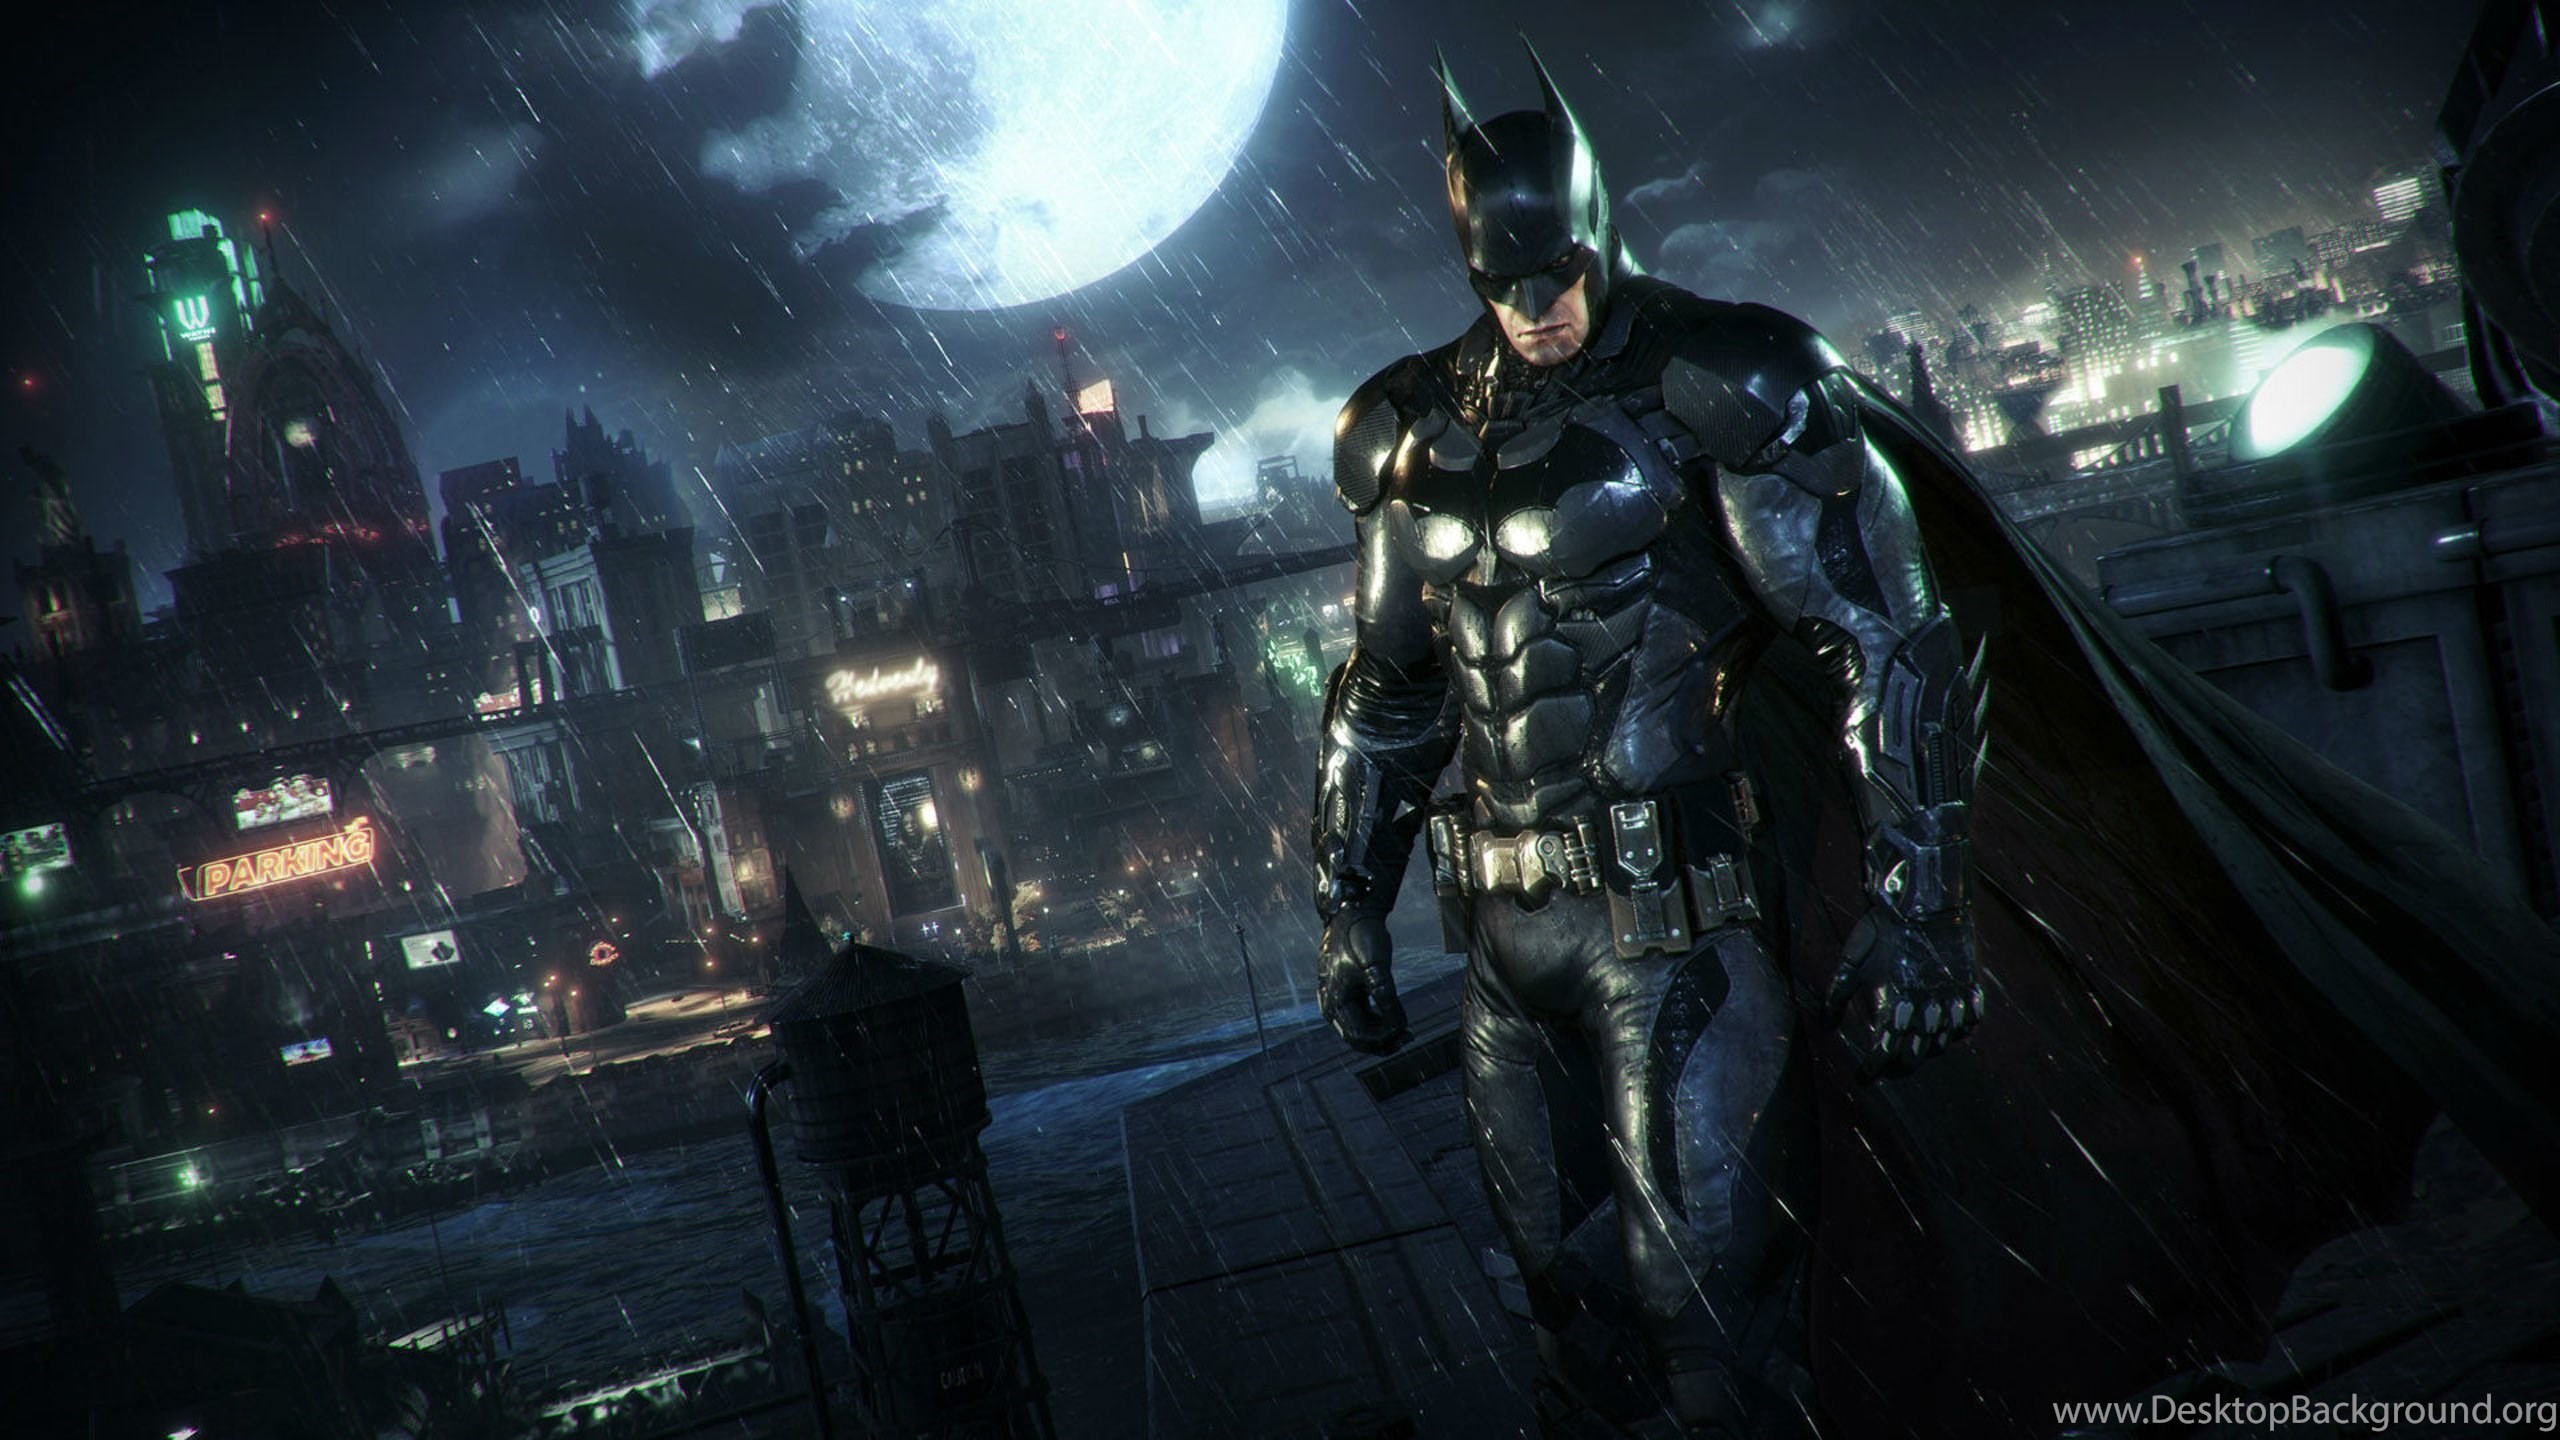 Batman Arkham Knight Action Game 4k Ultra HD Wallpapers Desktop